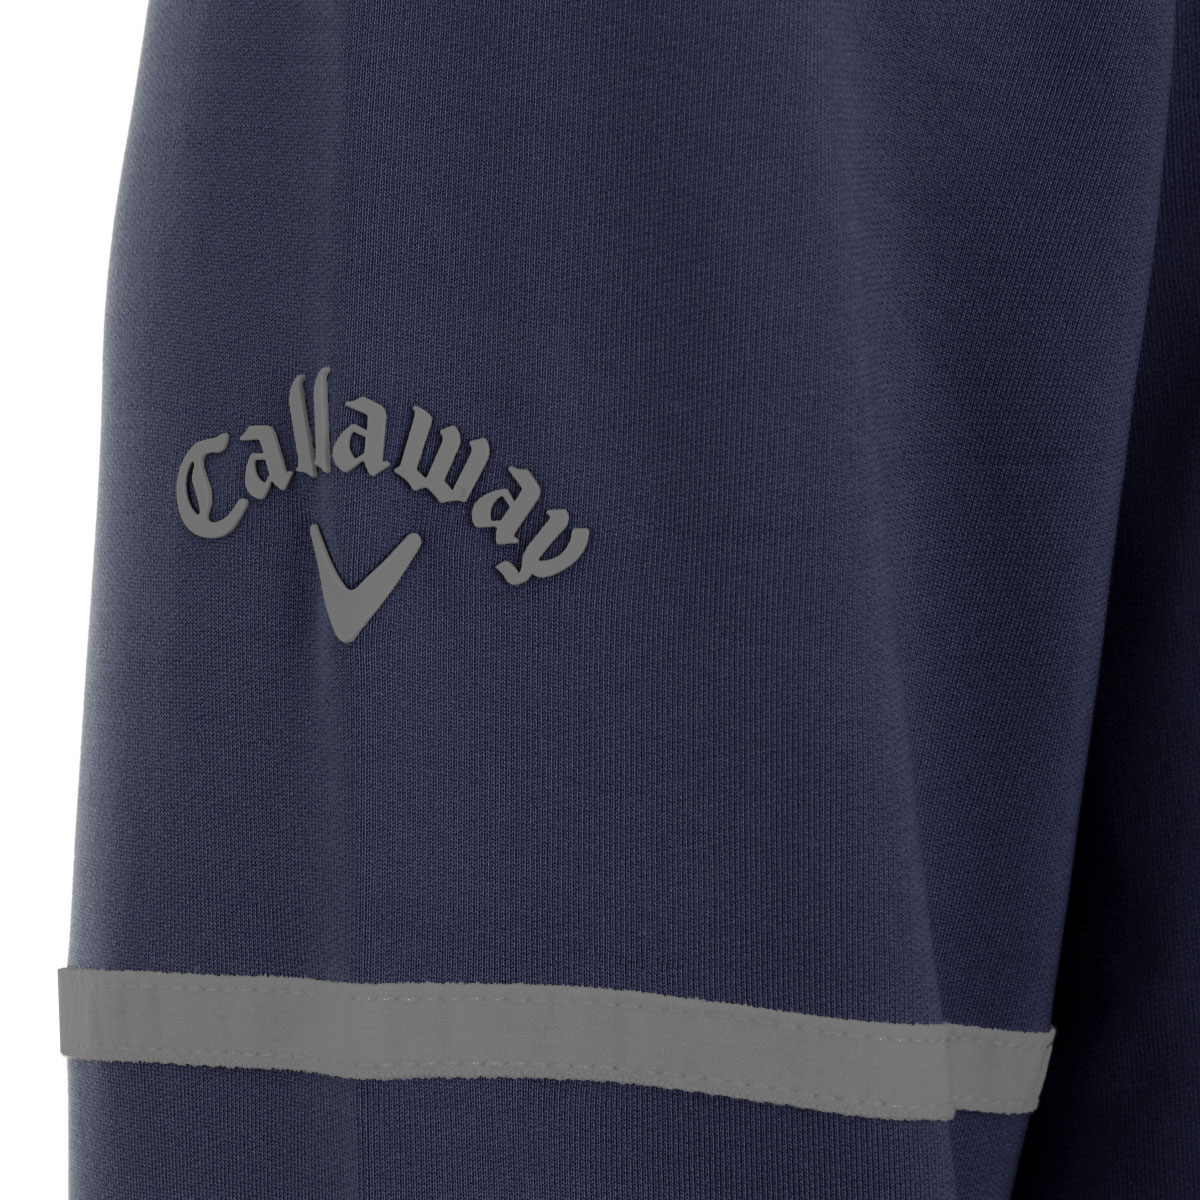 Callaway-Golf-Mens-1-4-Zip-Mid-Layer-Sweater-034-Tour-Logo-034-Pullover-Jumper thumbnail 17